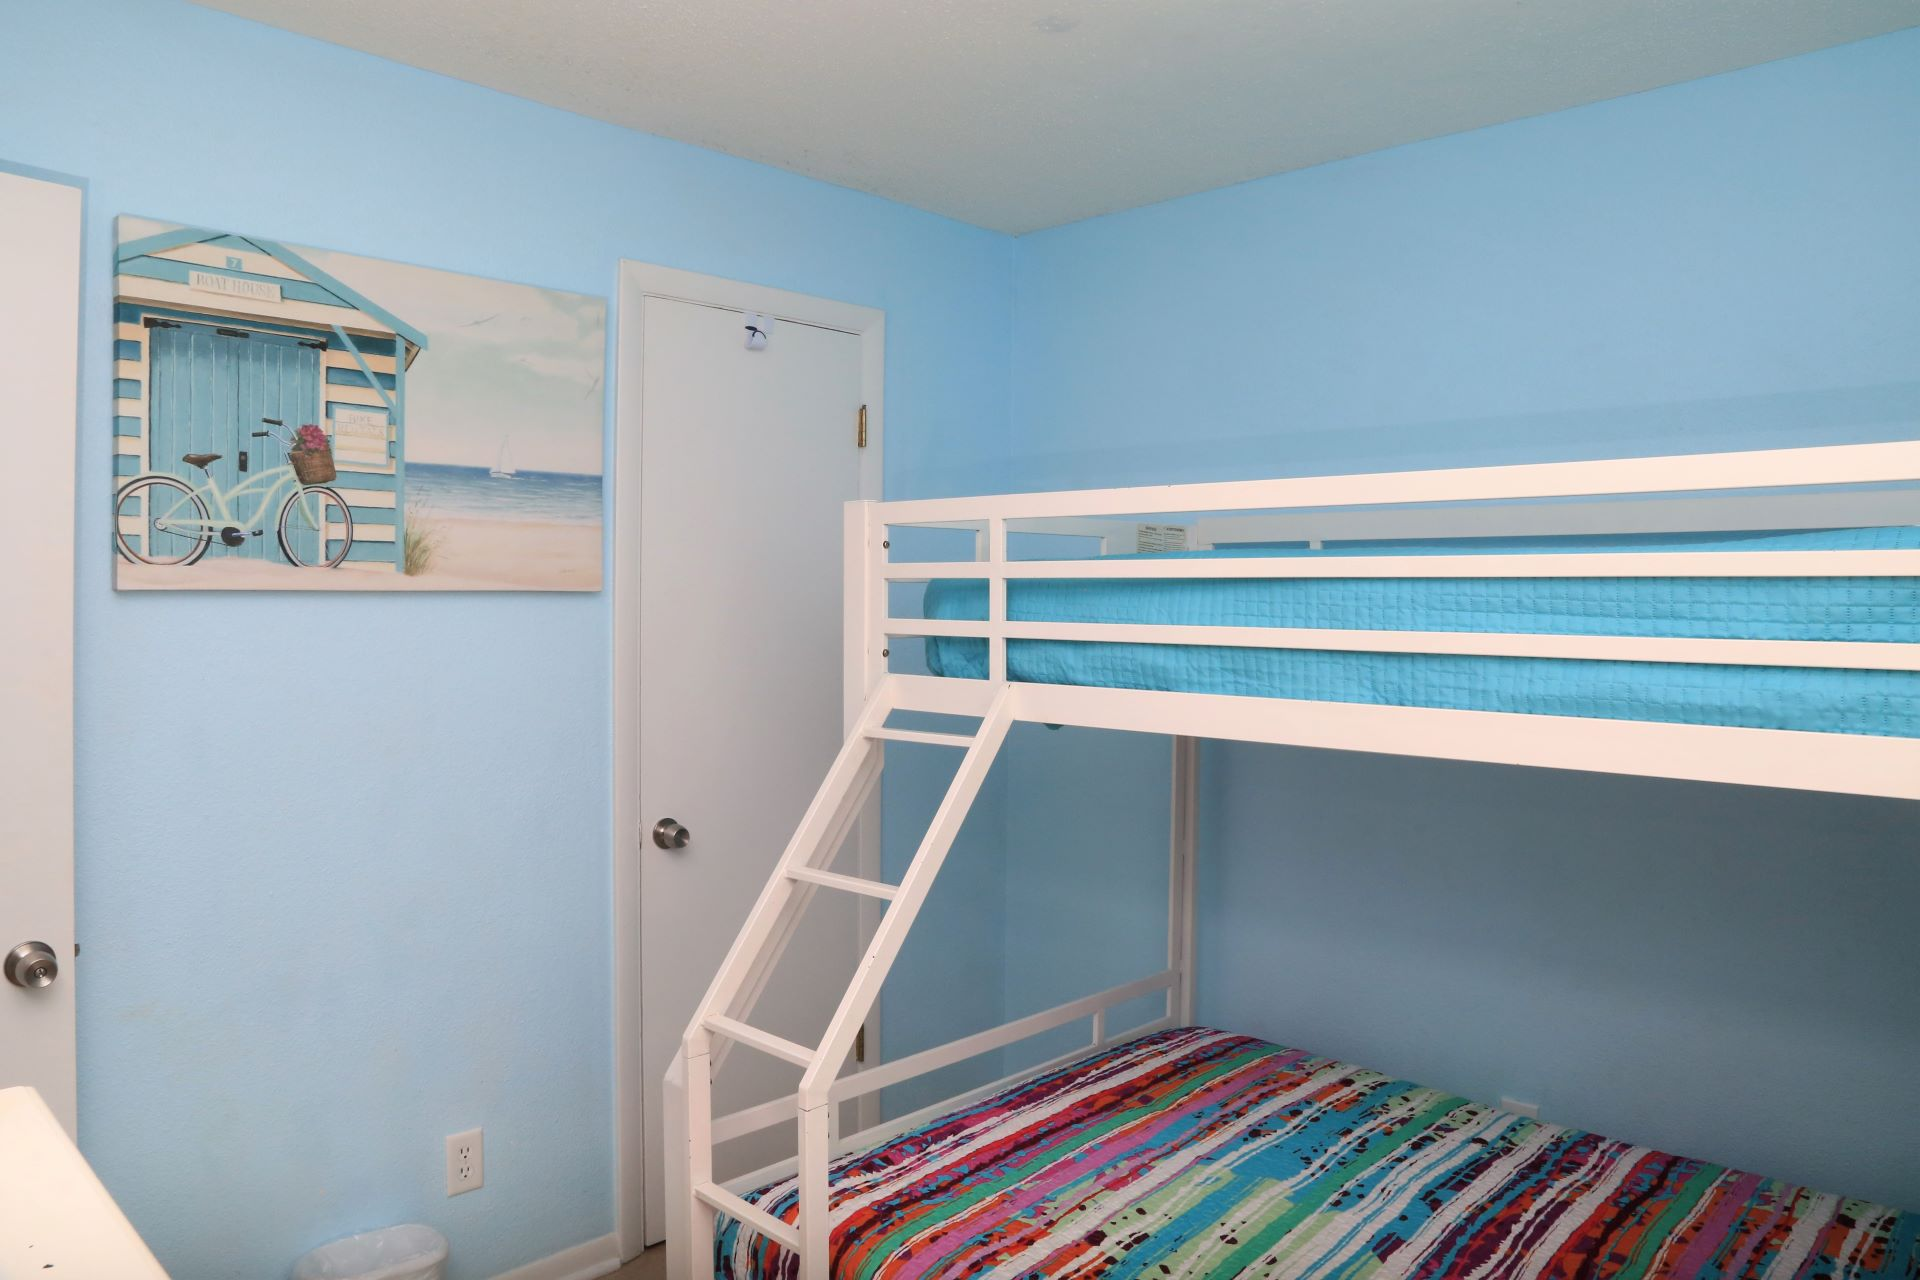 Bunk room includes a closet and dresser for storage.